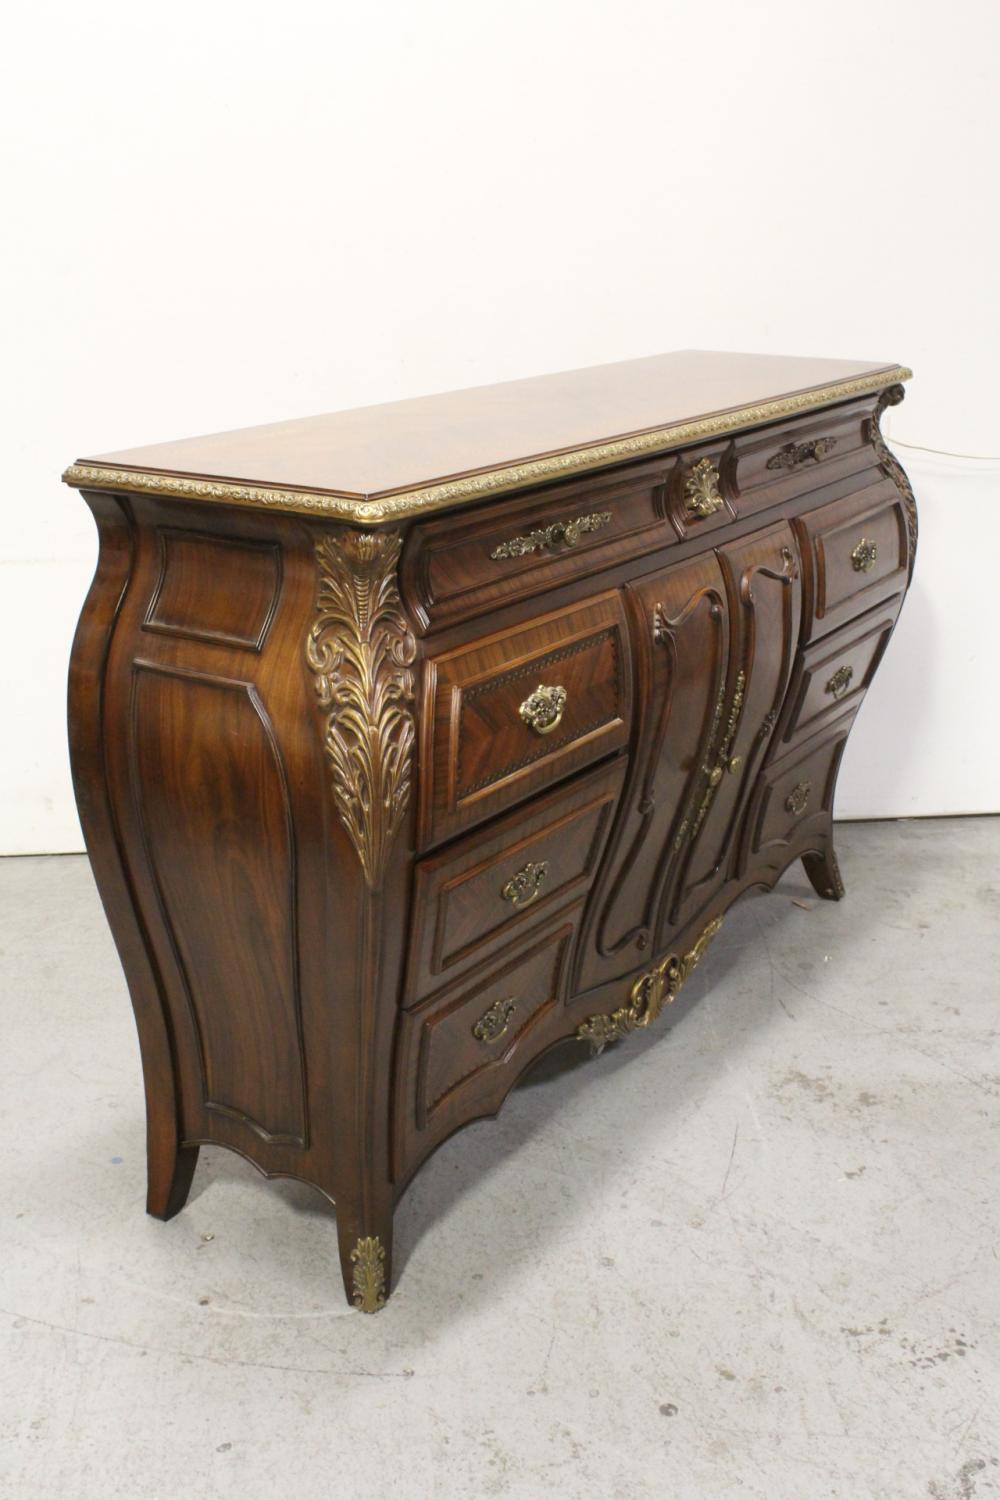 Lot 75: mahogany inlaid chest of drawers/cabinet